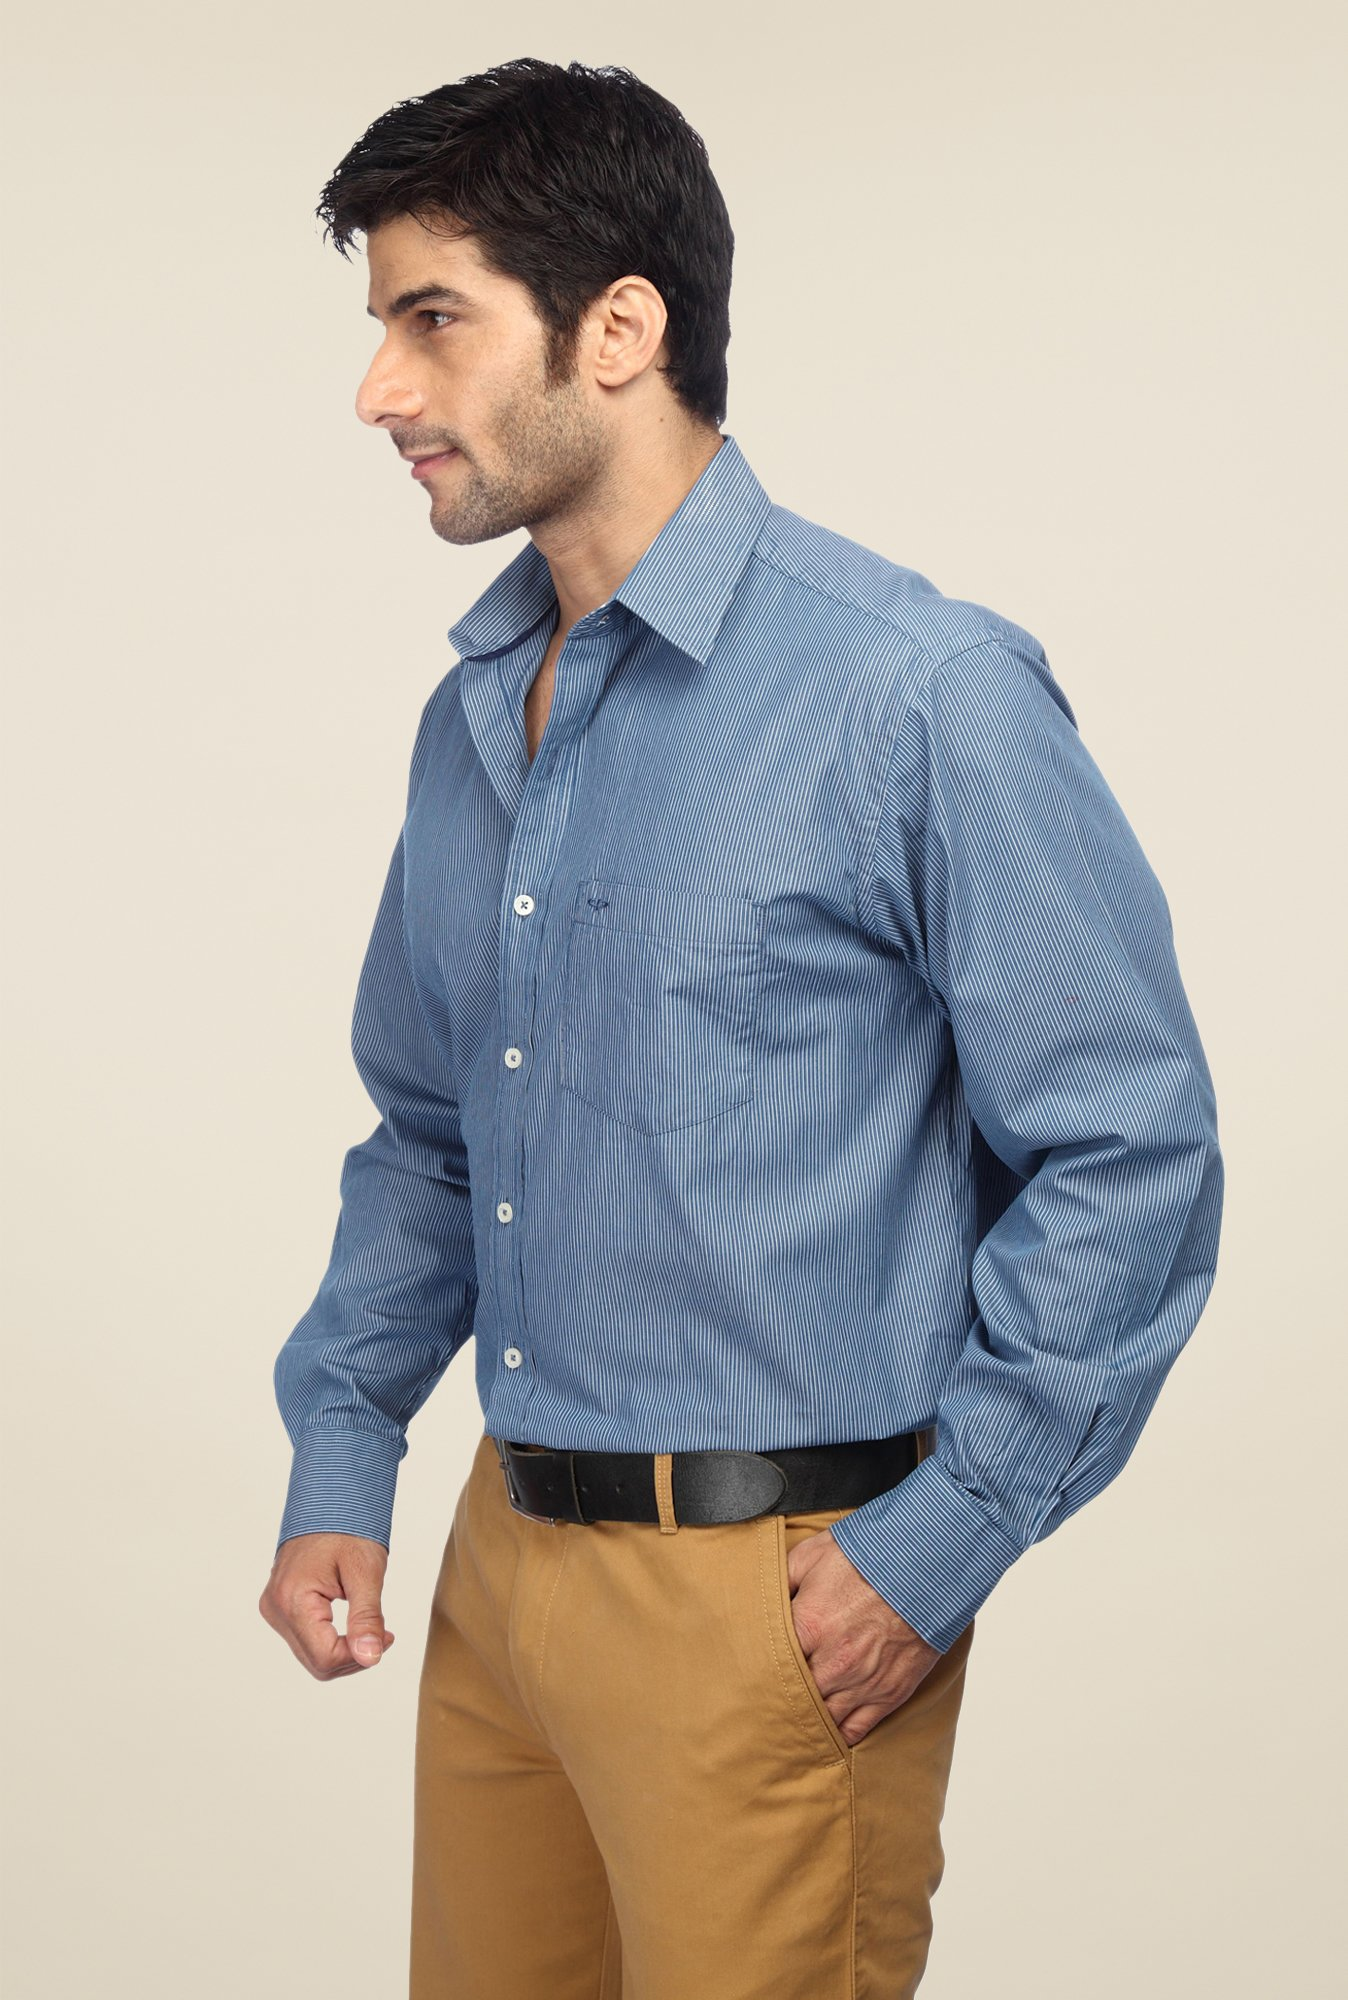 ColorPlus Blue Pin Striped Shirt